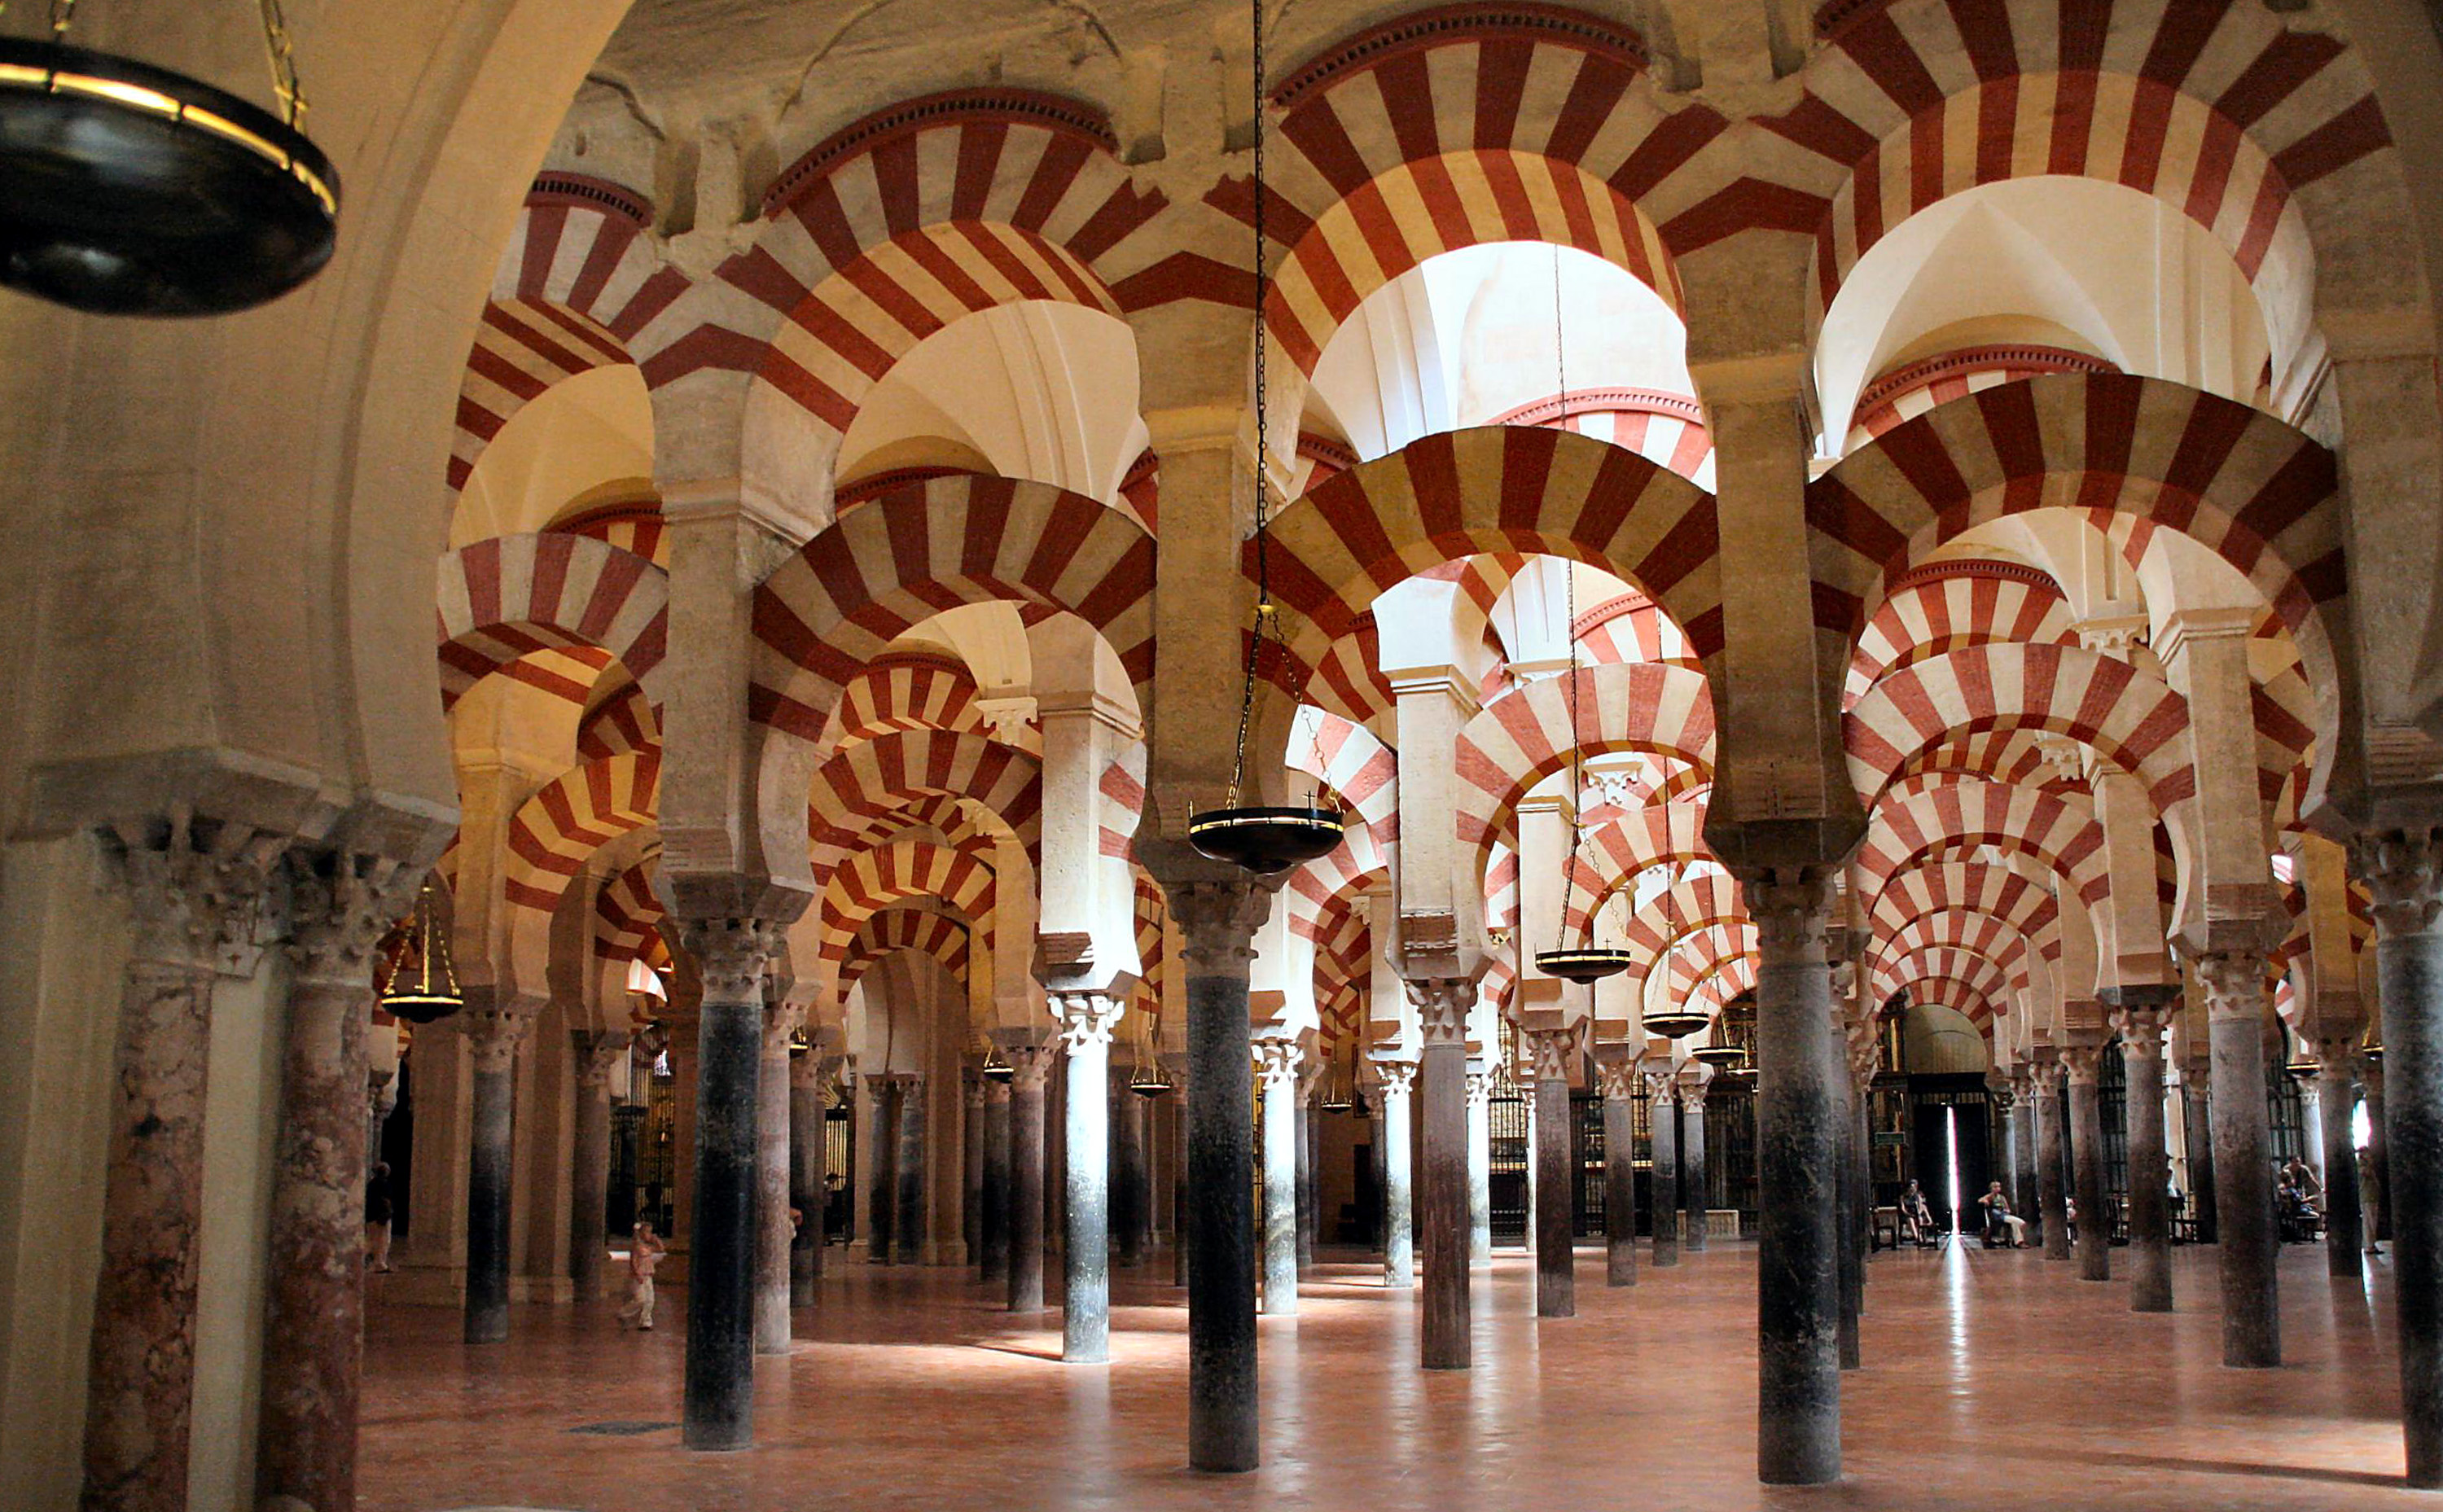 http://upload.wikimedia.org/wikipedia/commons/9/90/Mosque_of_Cordoba.jpg